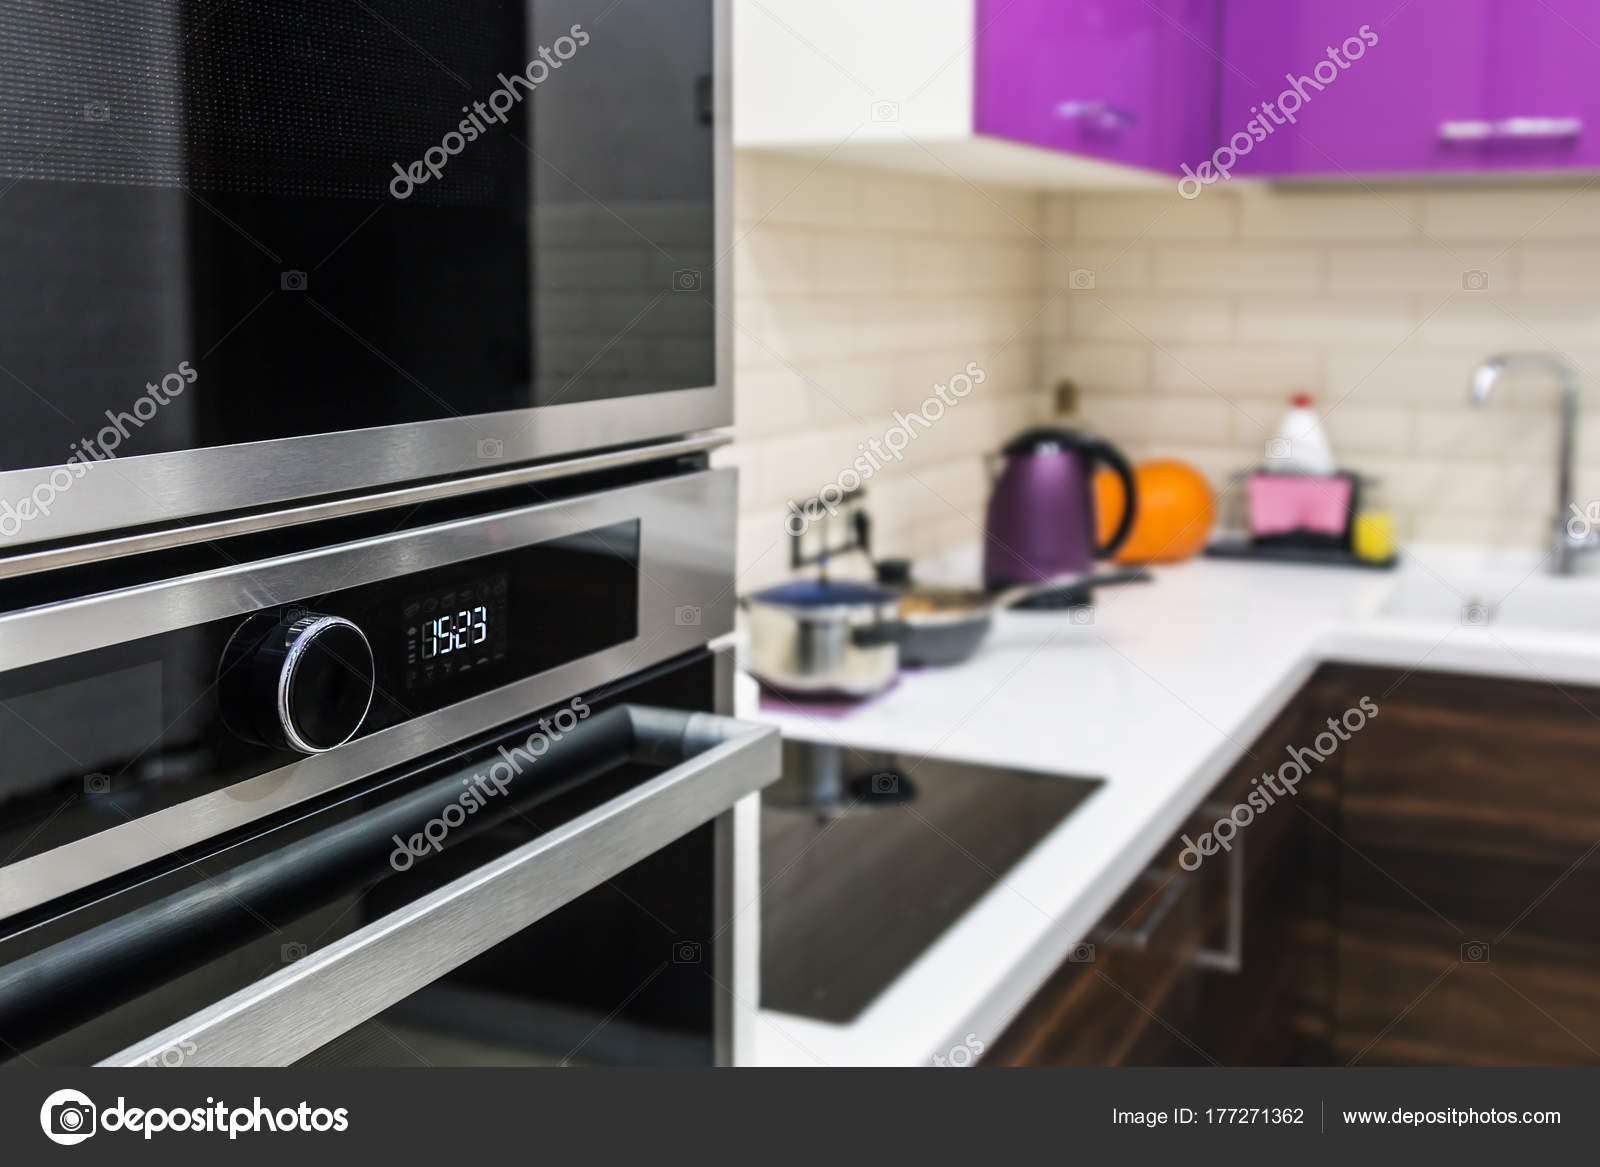 Kitchen Appliances Built Into Kitchen Cabinets Stock Photo